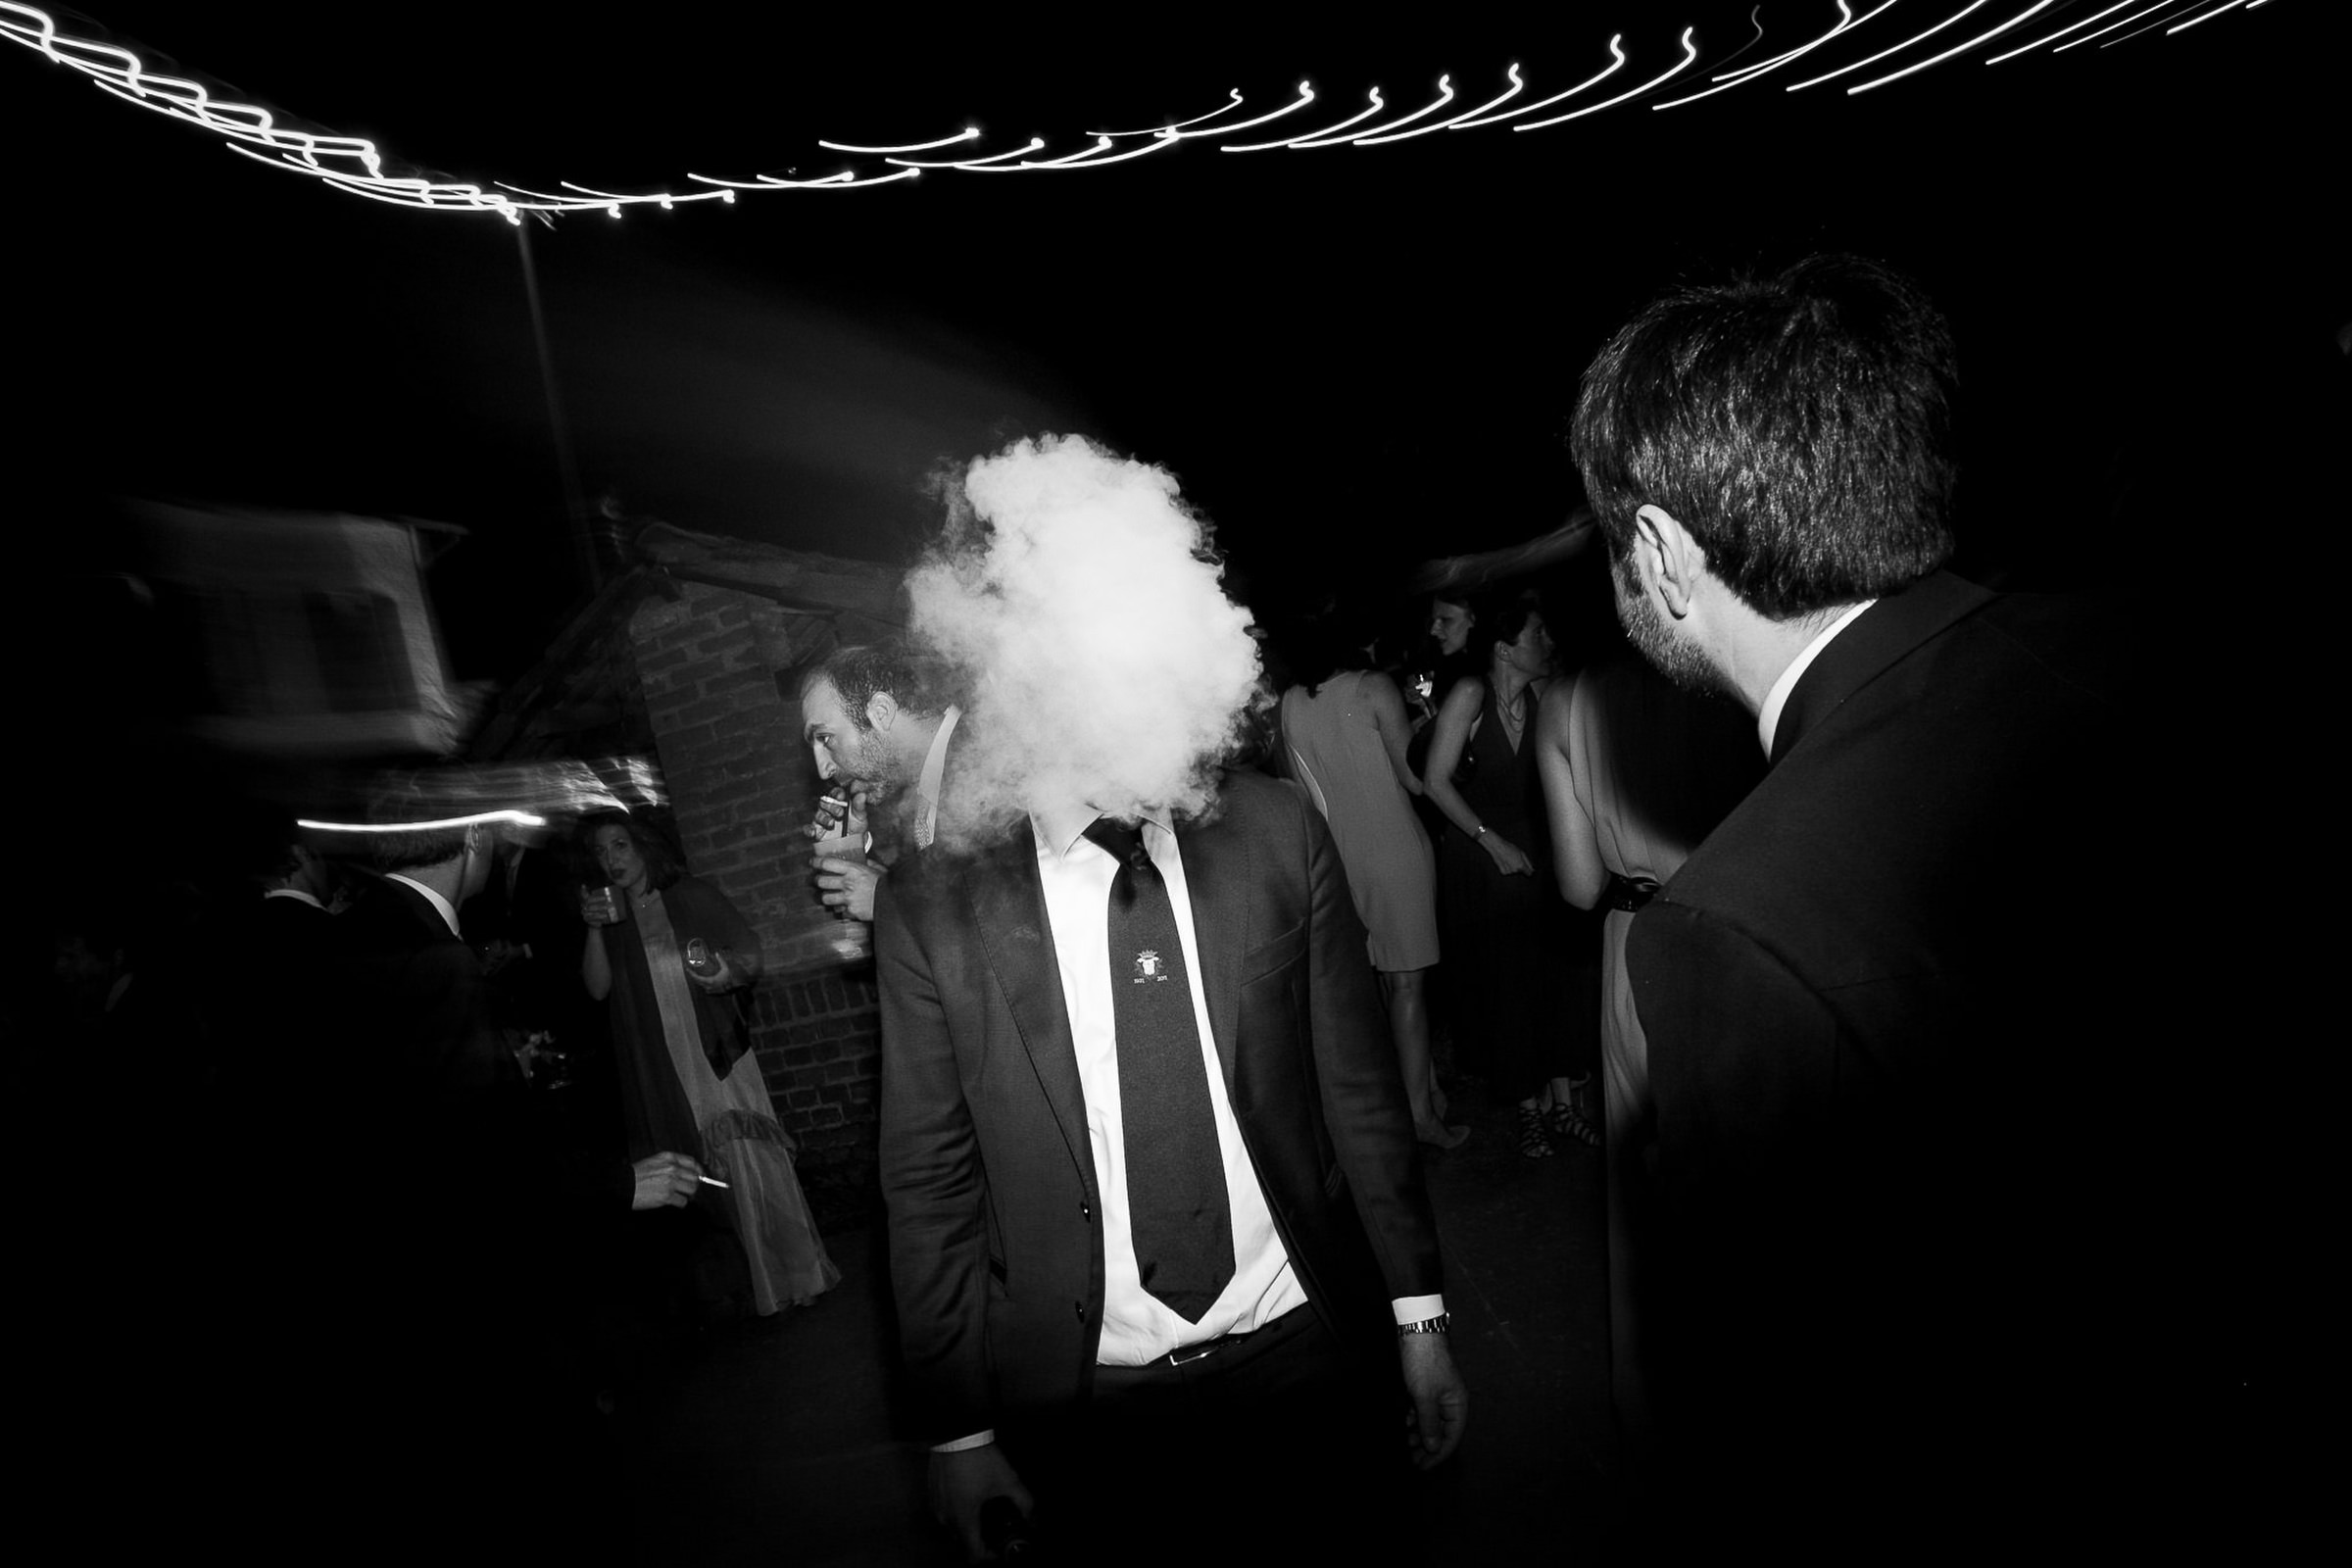 Guests head in a puff of smoke - photo by Julian Kanz Photography